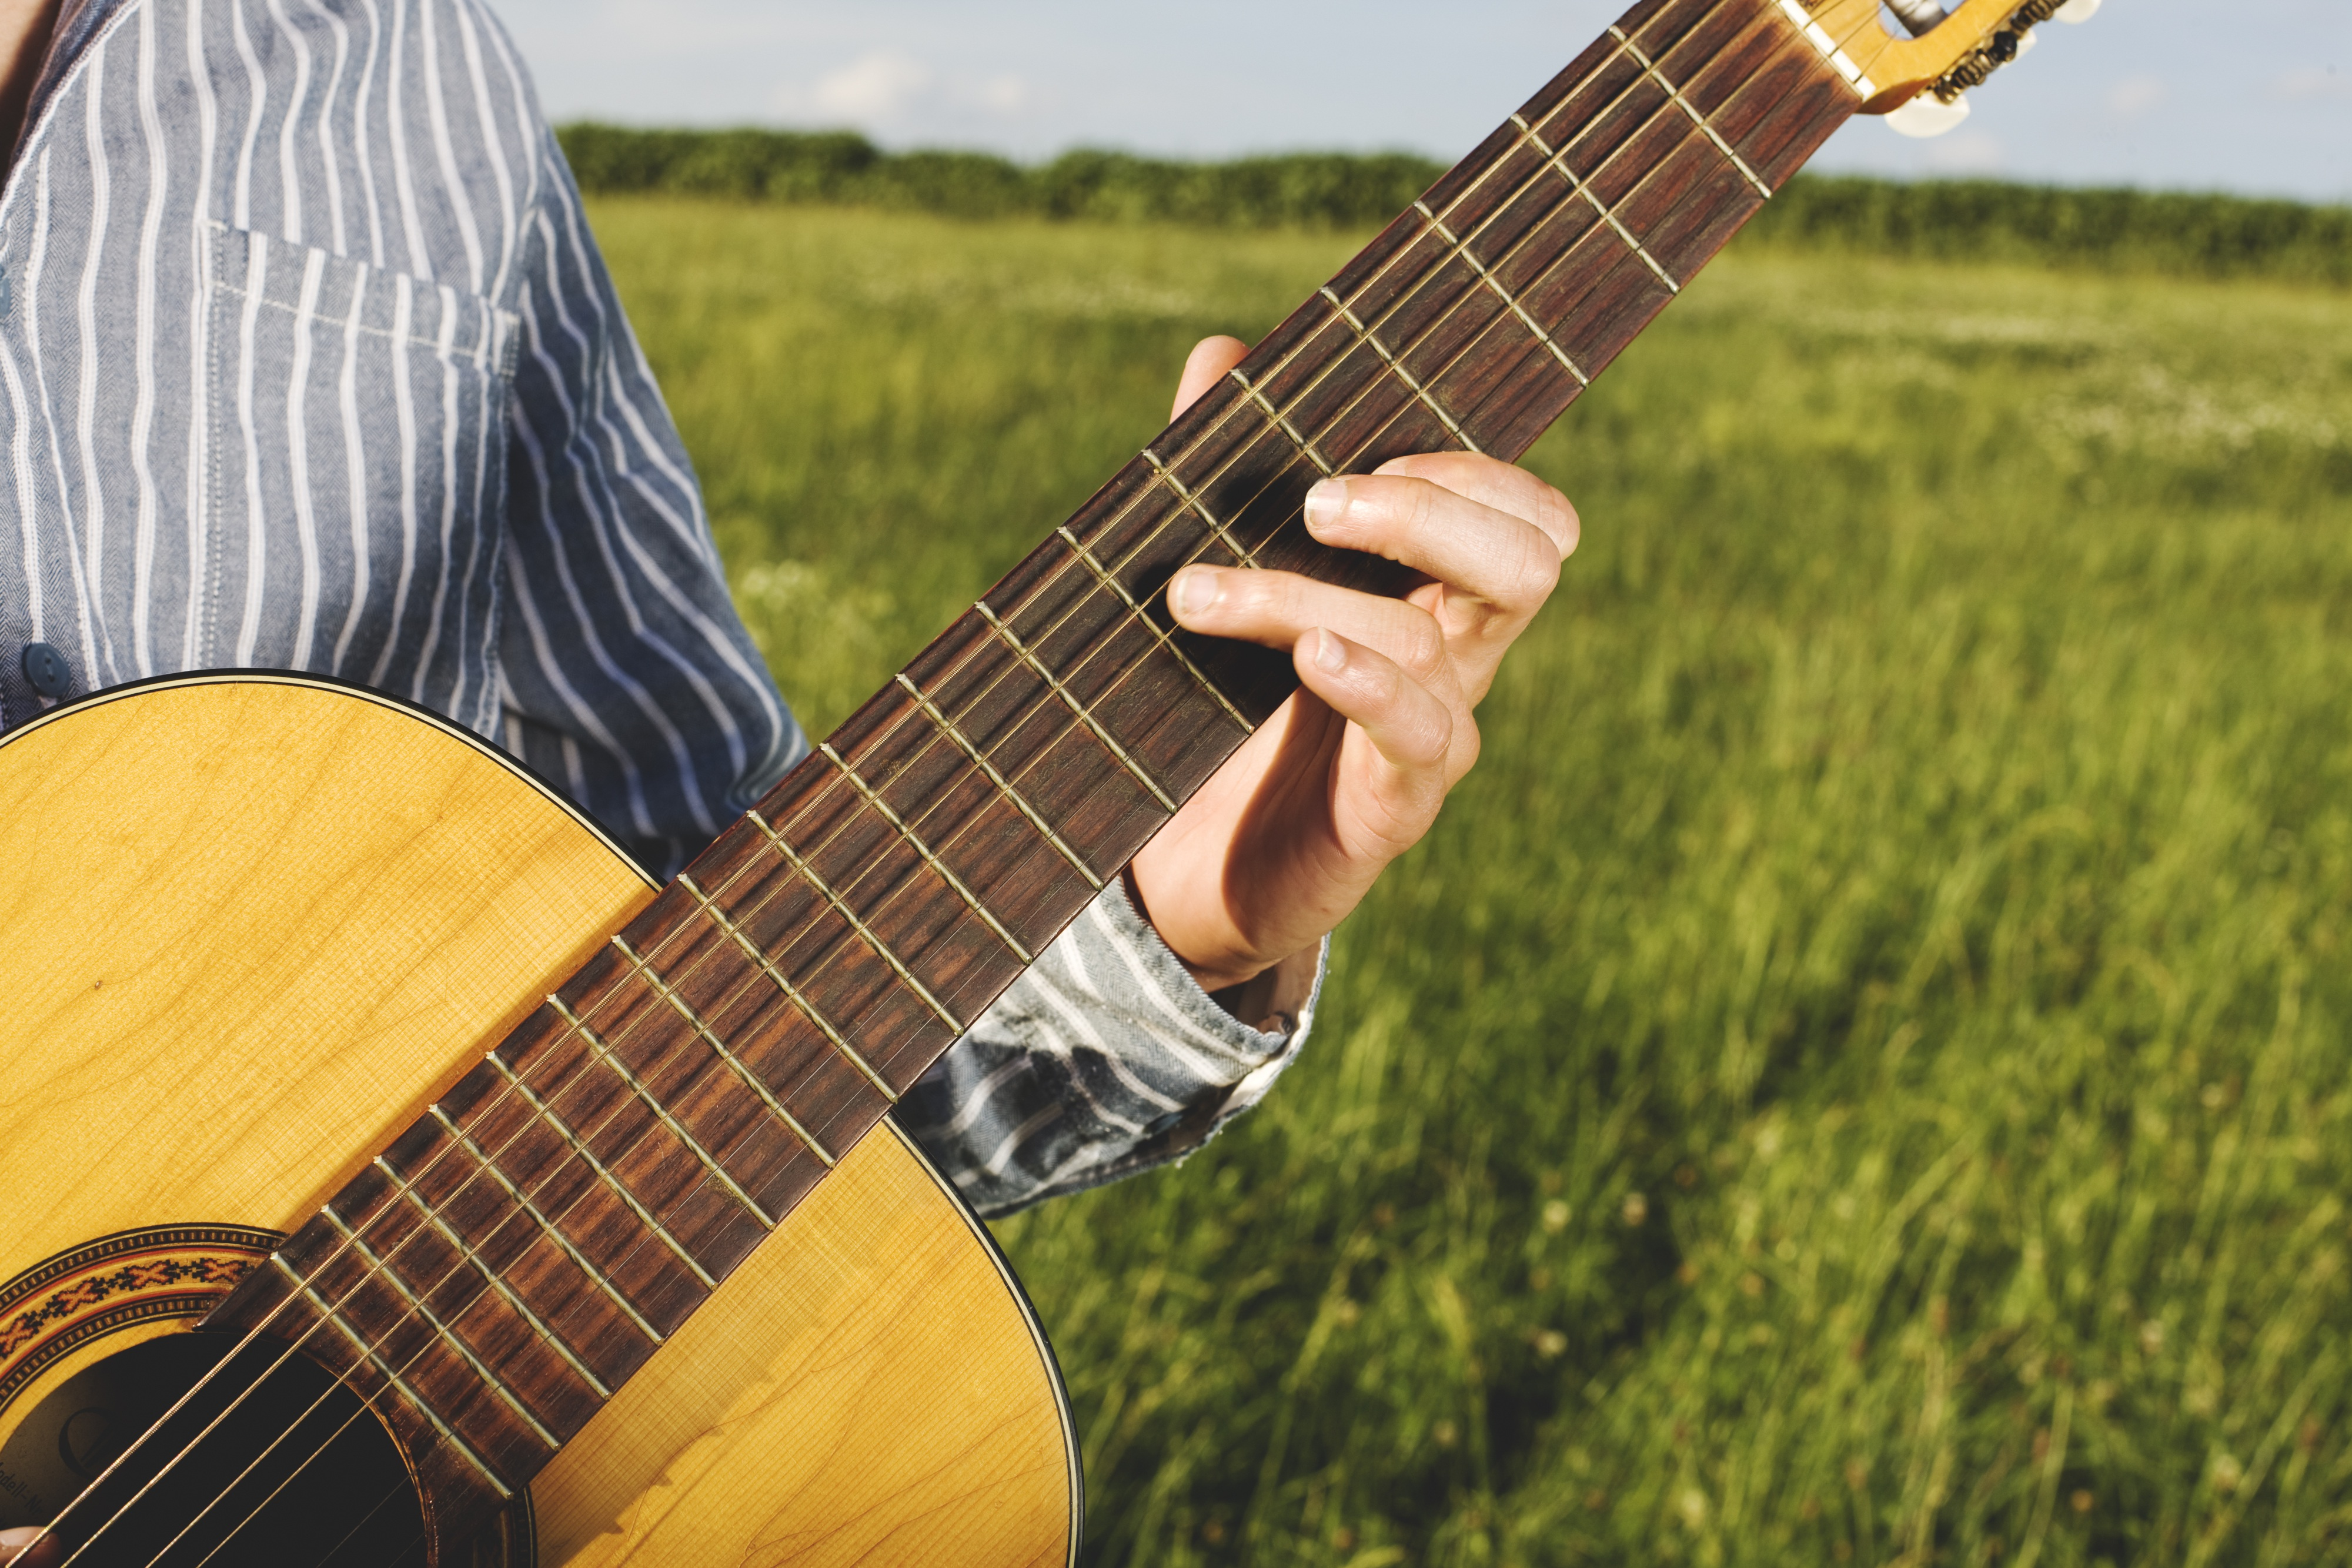 Country Girl Wallpaper Woman Sitting Holding Guitar 183 Free Stock Photo